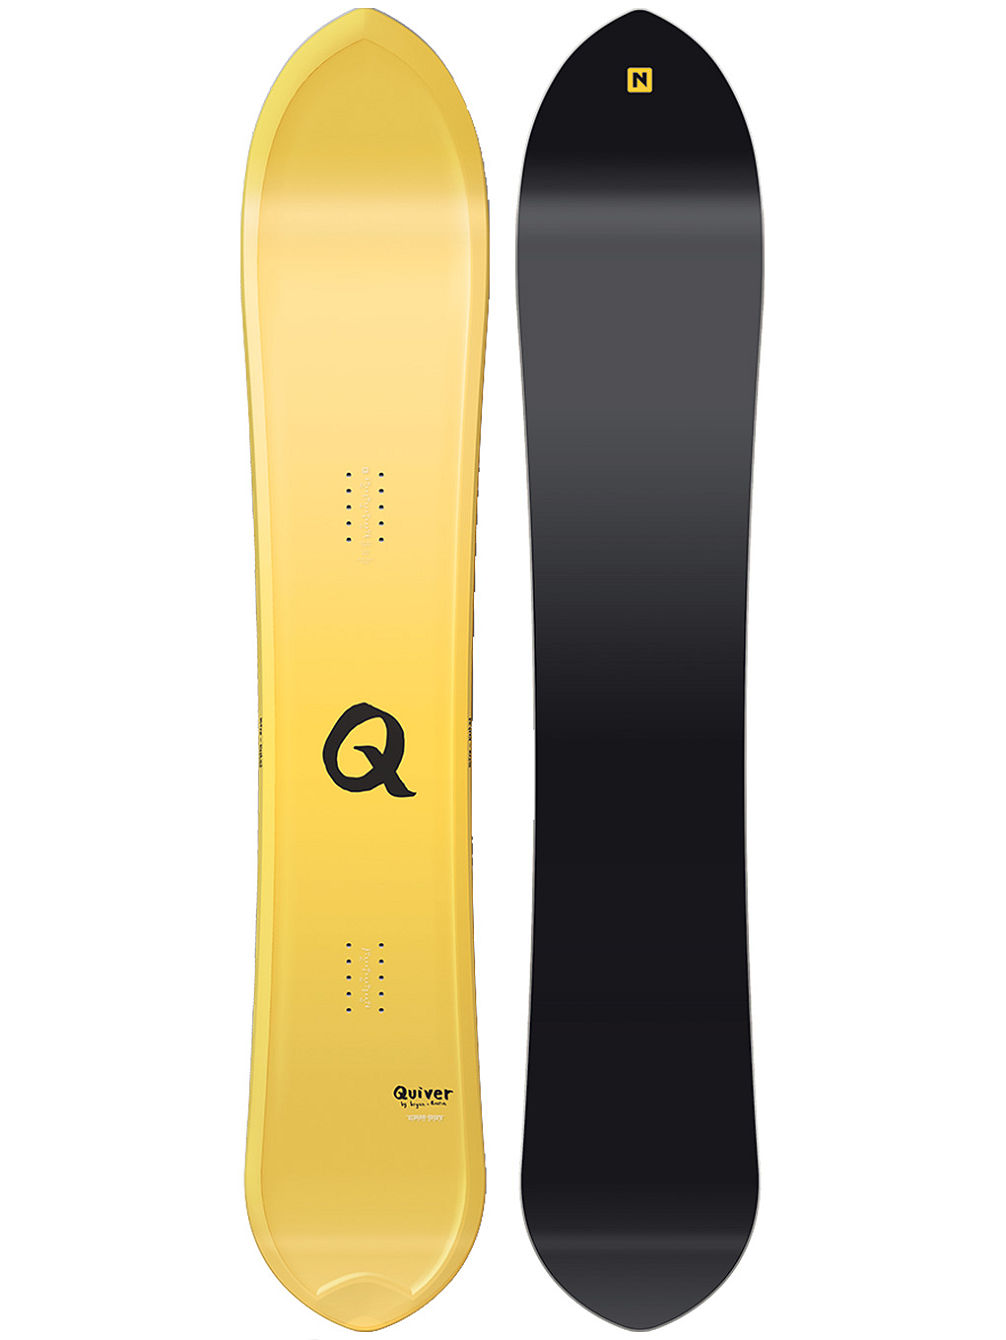 The Quiver Slash 163 2018 Snowboard